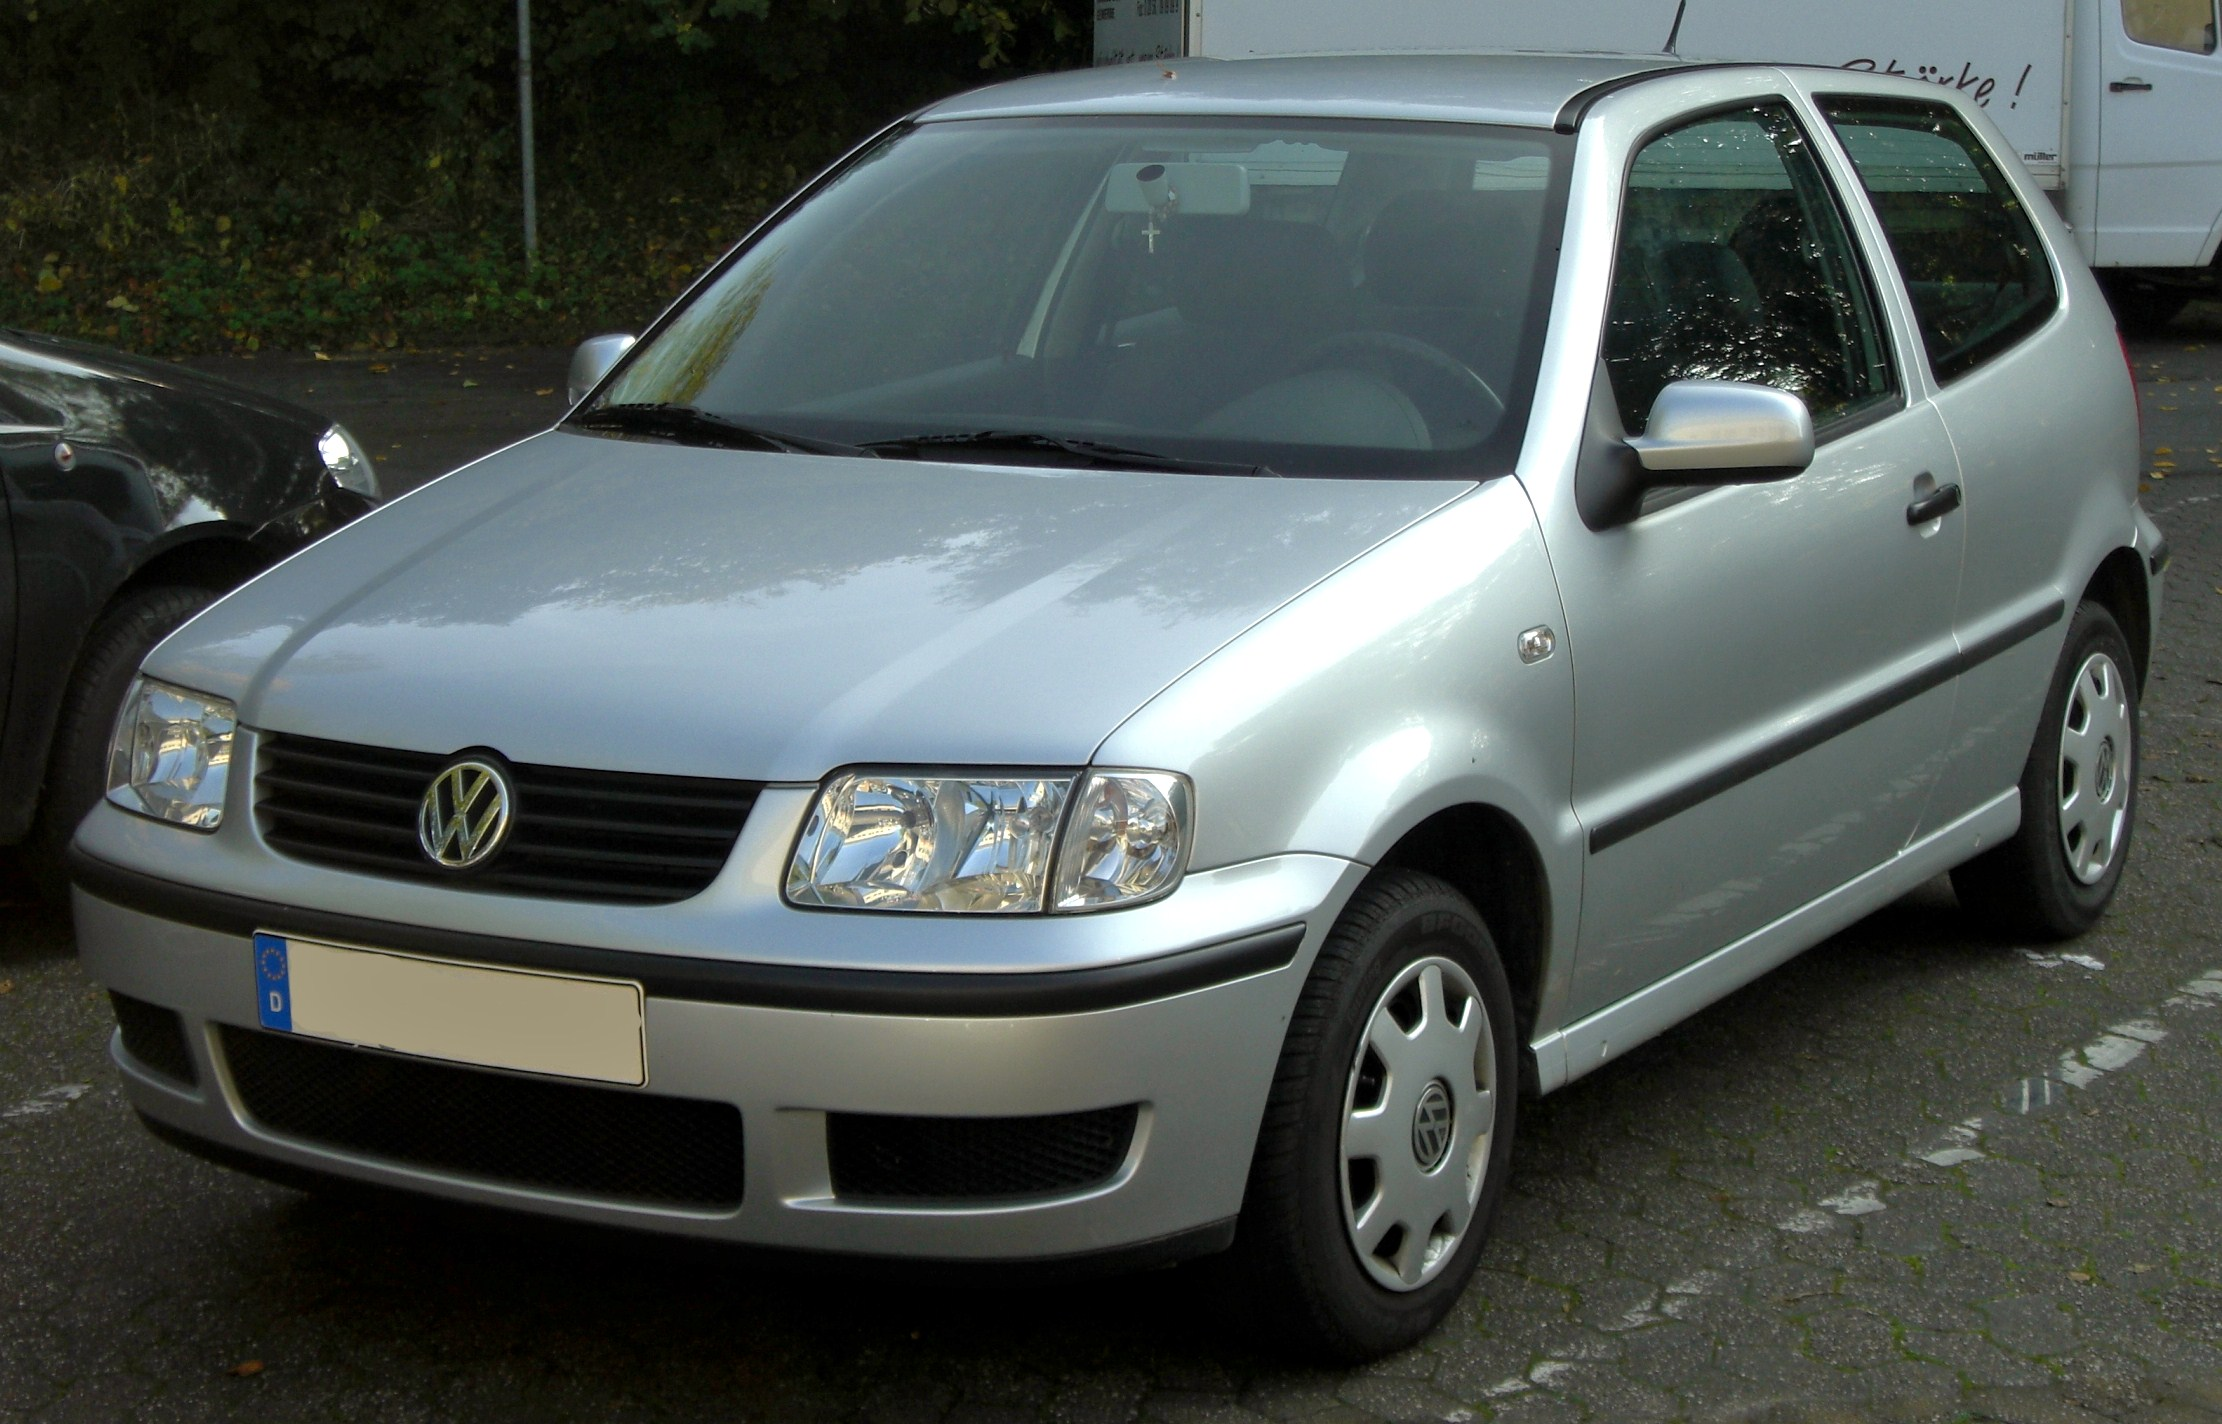 file vw polo iii 2 facelift front jpg wikipedia. Black Bedroom Furniture Sets. Home Design Ideas